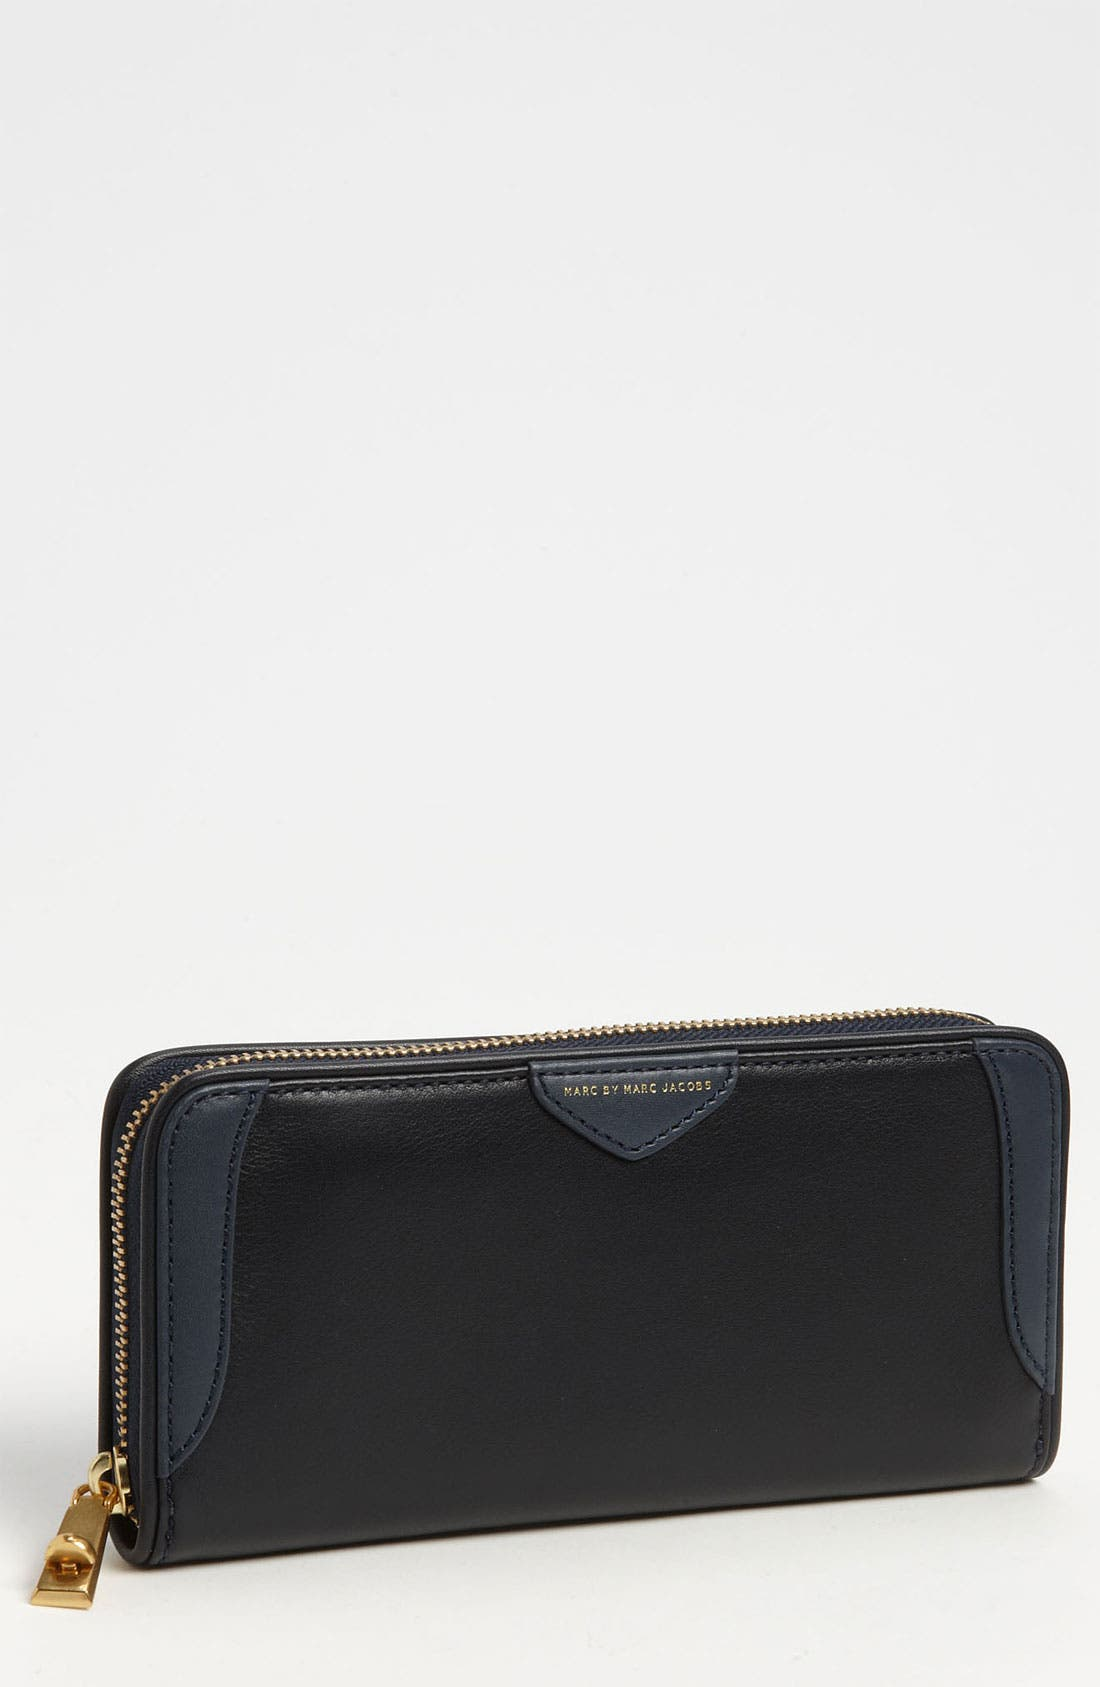 Alternate Image 1 Selected - MARC BY MARC JACOBS 'The Zip Locker' Wallet